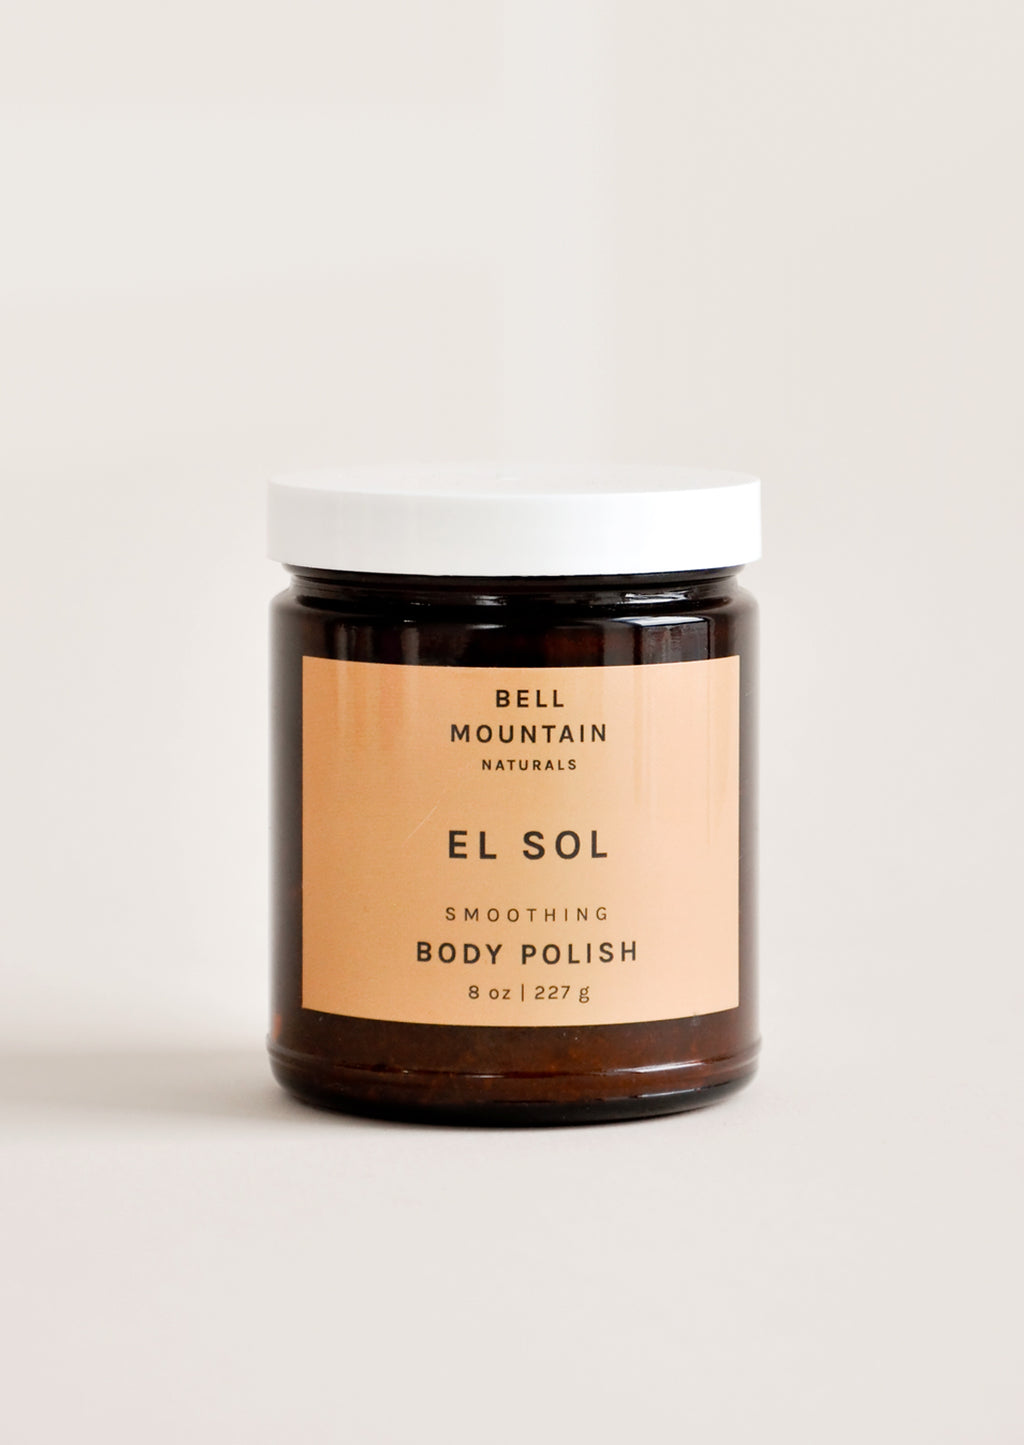 El Sol Body Polish